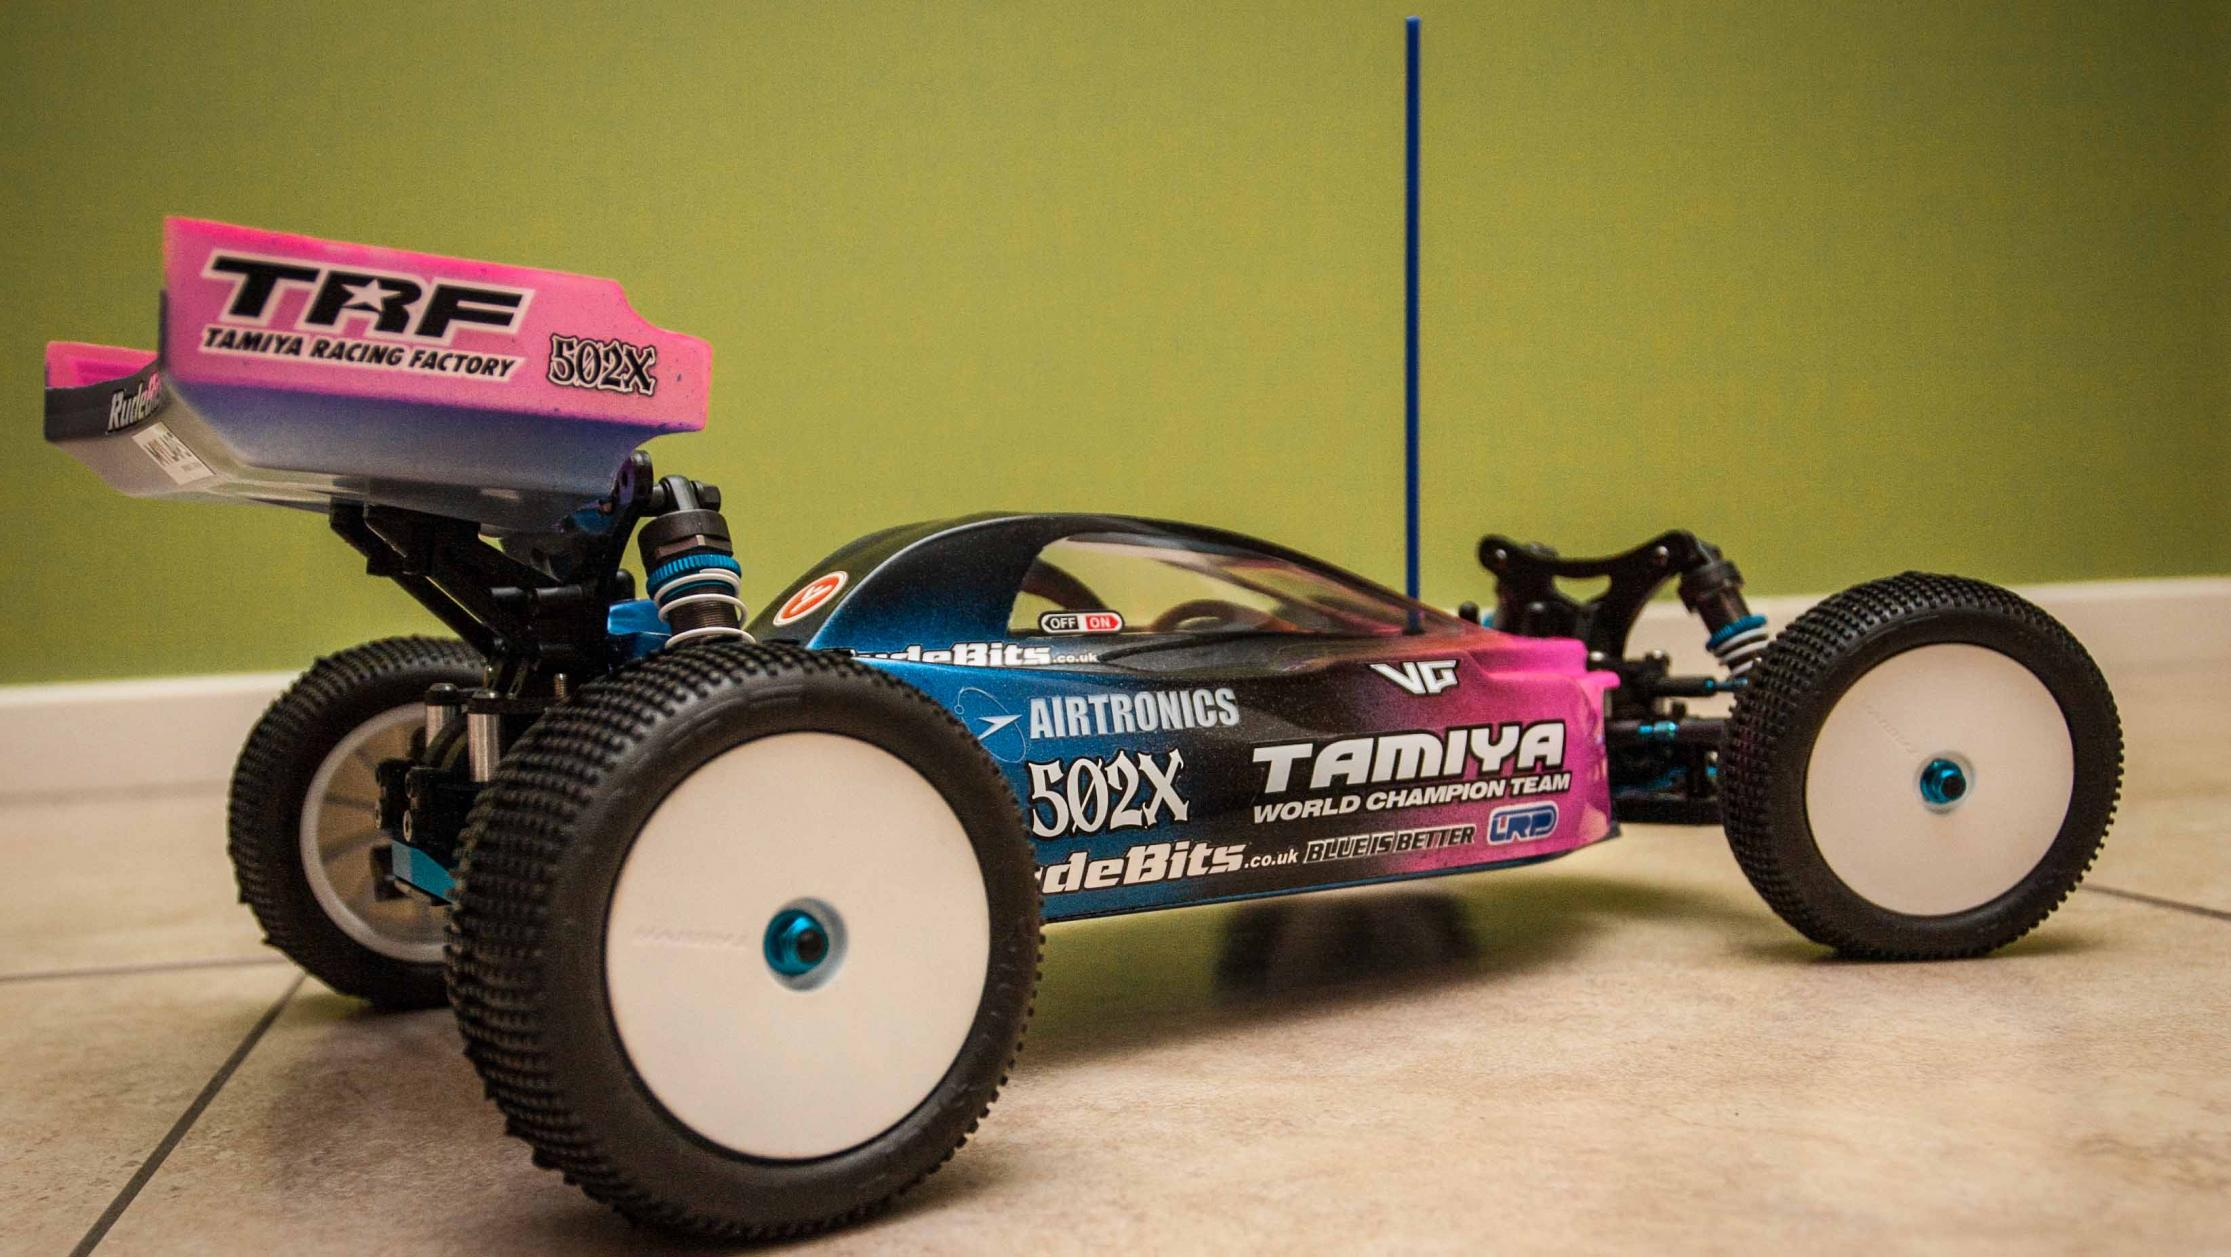 Trf: TAMIYA TRF502X Thread